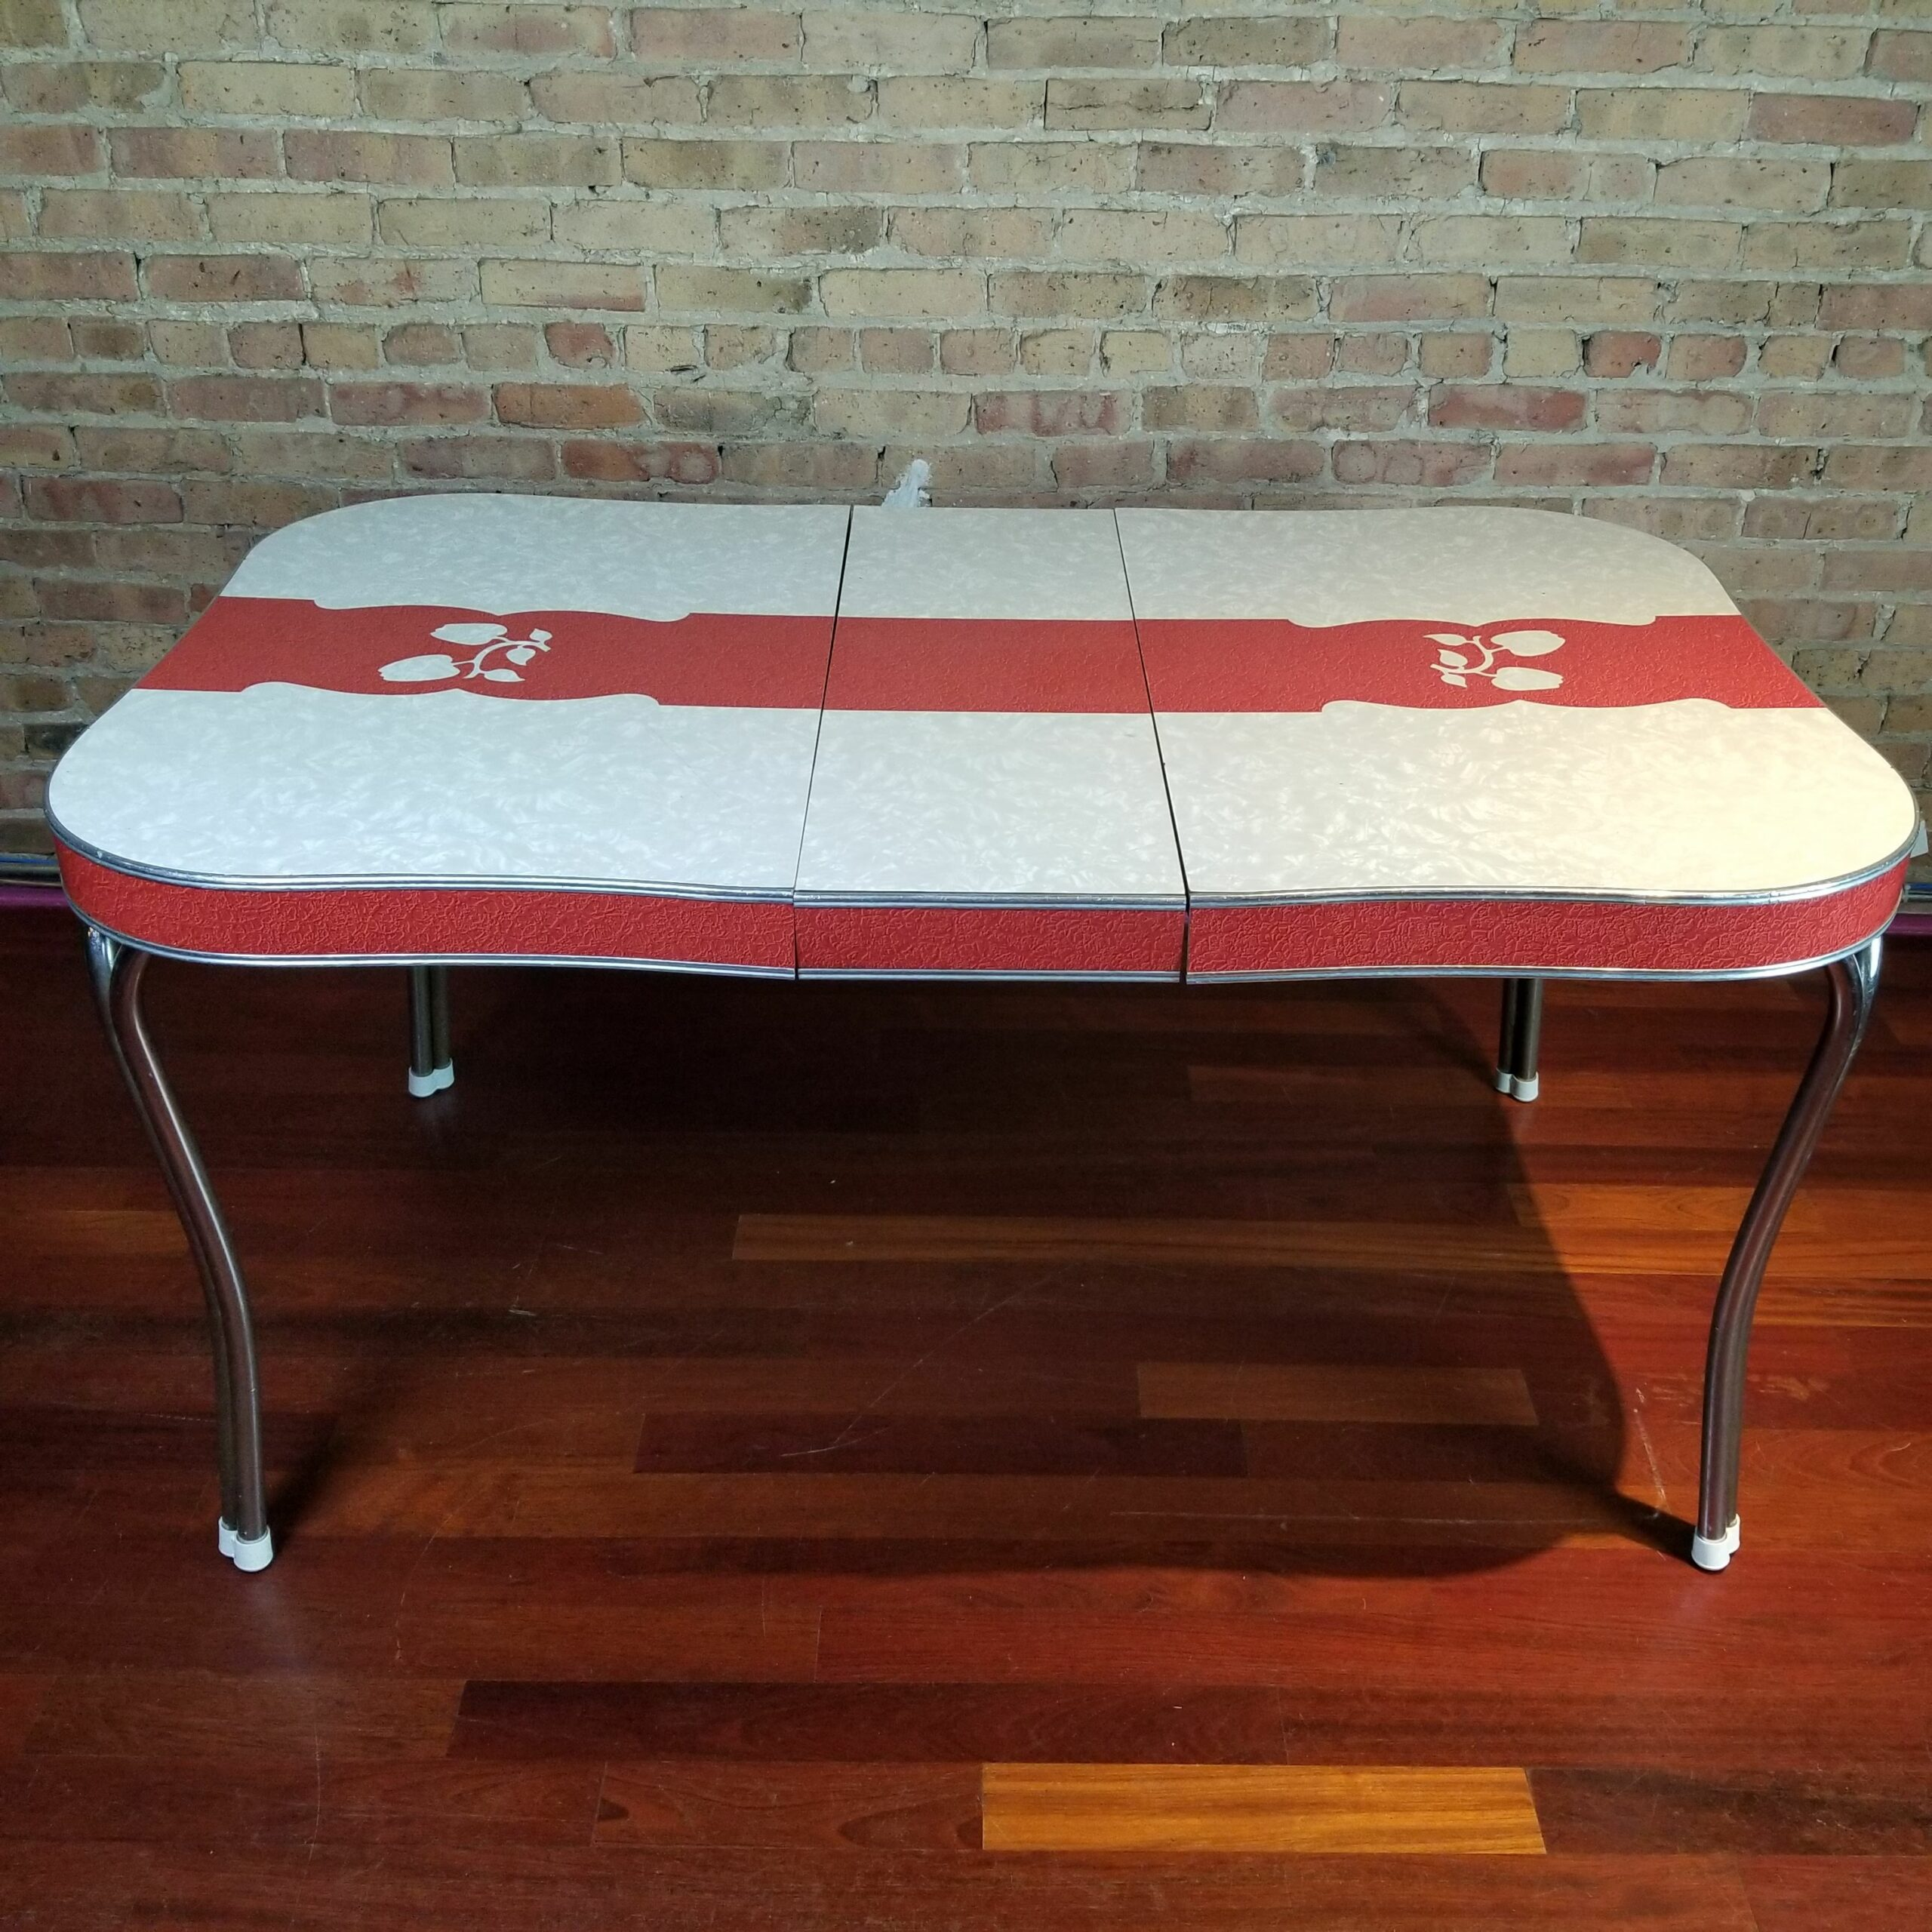 Formica Dining Table with Red Stripe and Apple Details